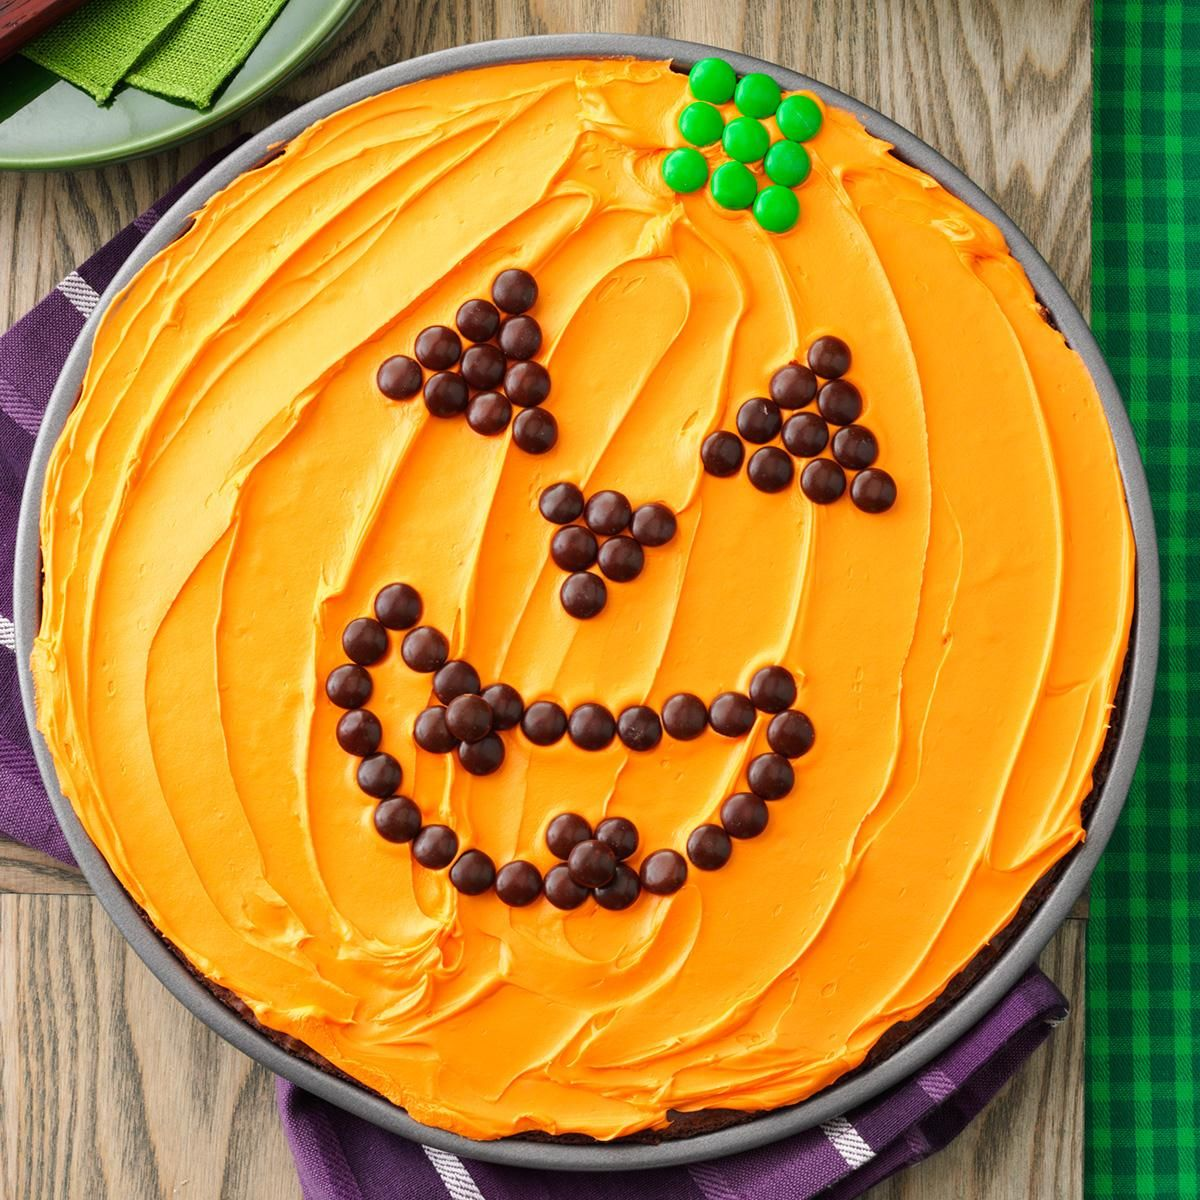 Great Pumpkin Brownie Recipe -Our kids beg for these big brownies every year. I just bake brownie batter in a pizza pan, spread with orange-tinted frosting and let the kids design a pumpkin stem and jack-o'-lantern face using candy. —Darla Wester, Meriden, Iowa